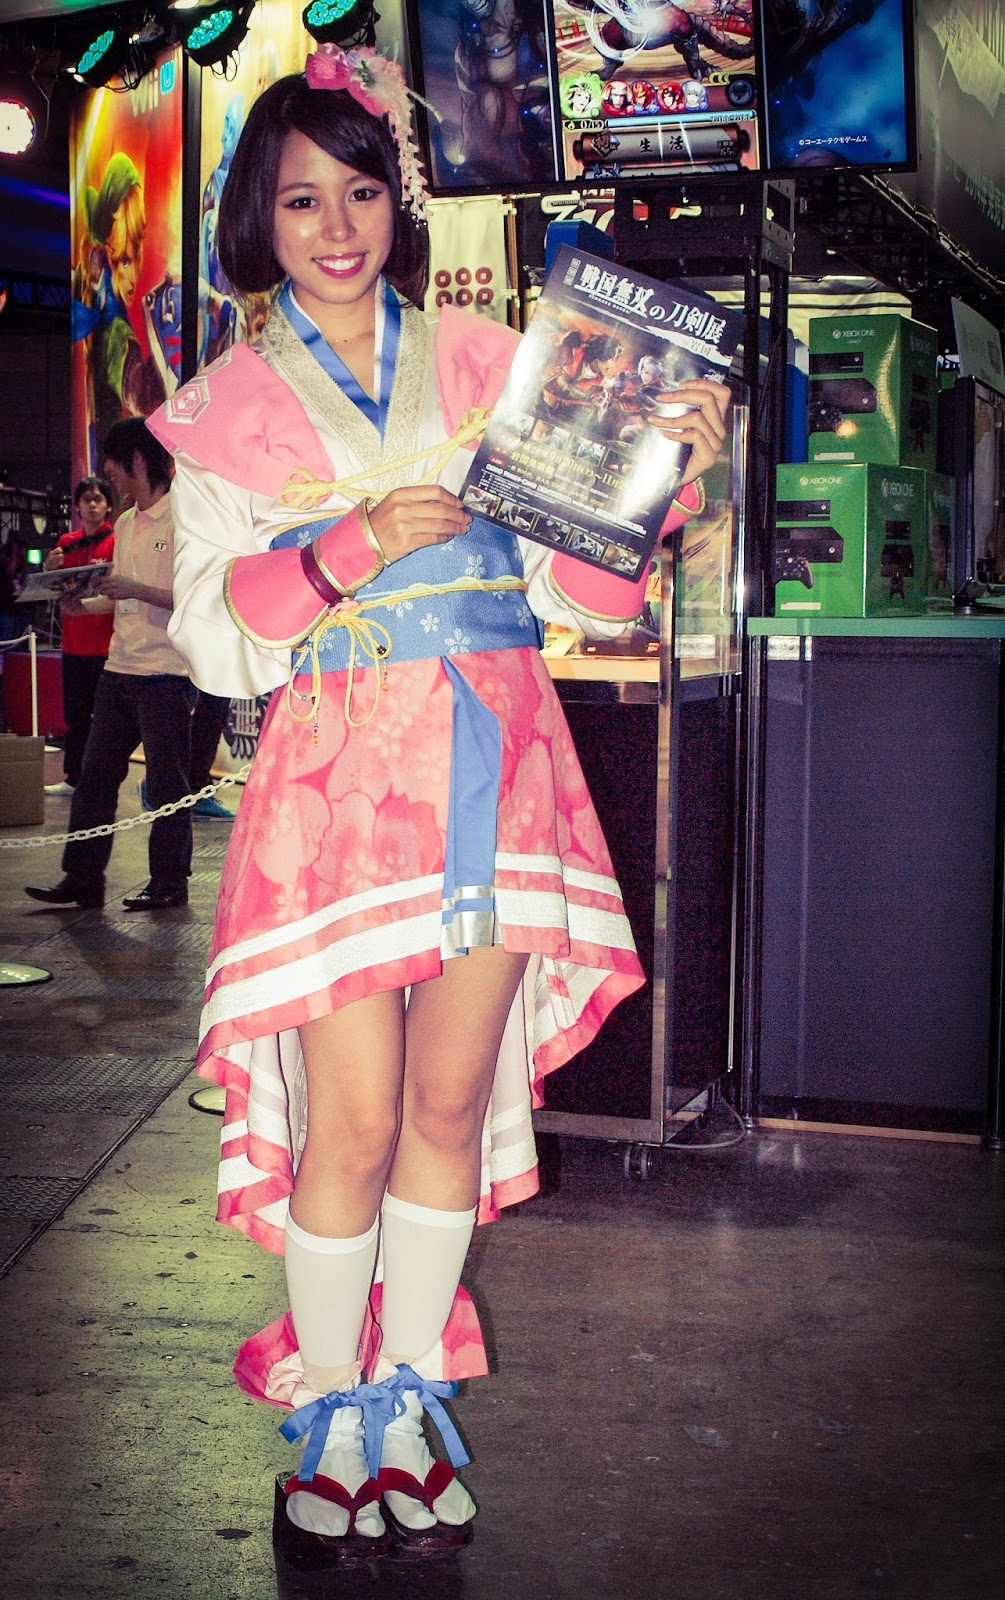 Lady Oichi cosplay